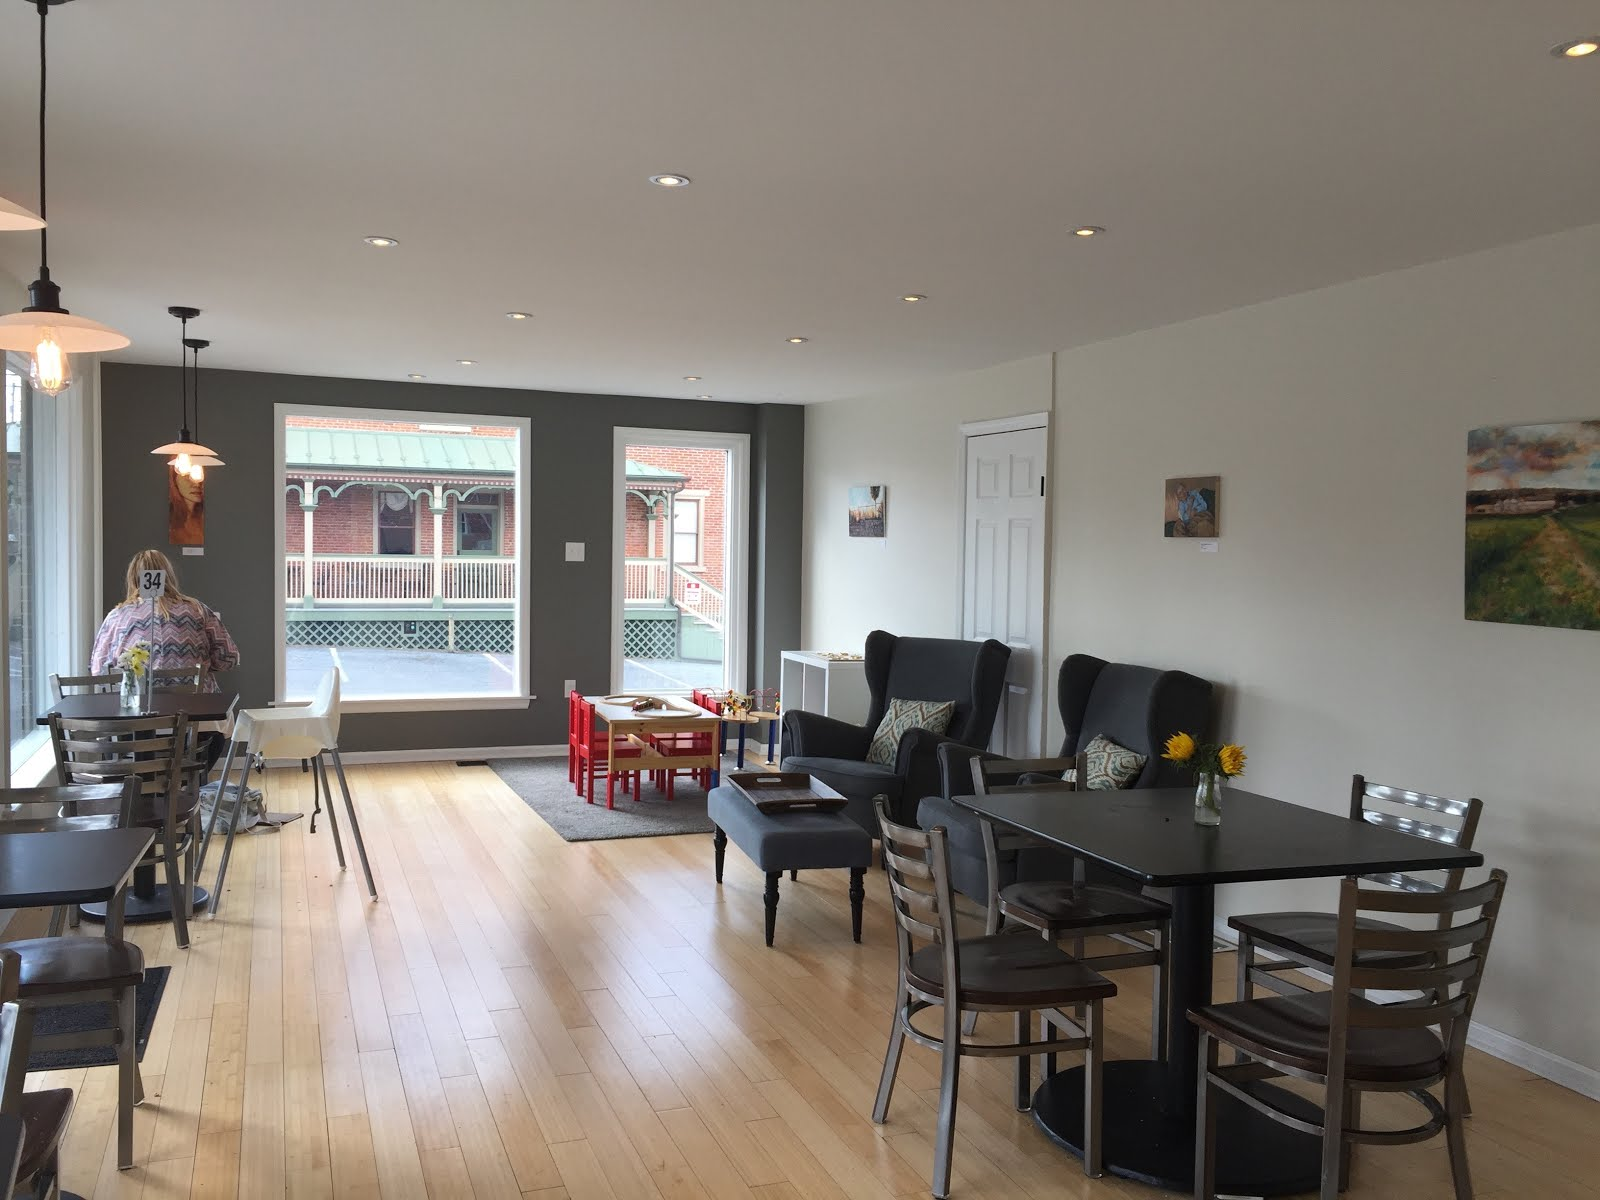 black singles in sadsburyville See all available apartments for rent at black hawk apartments in downingtown, pa black hawk apartments has rental units ranging from 770-965 sq ft starting at $1185.